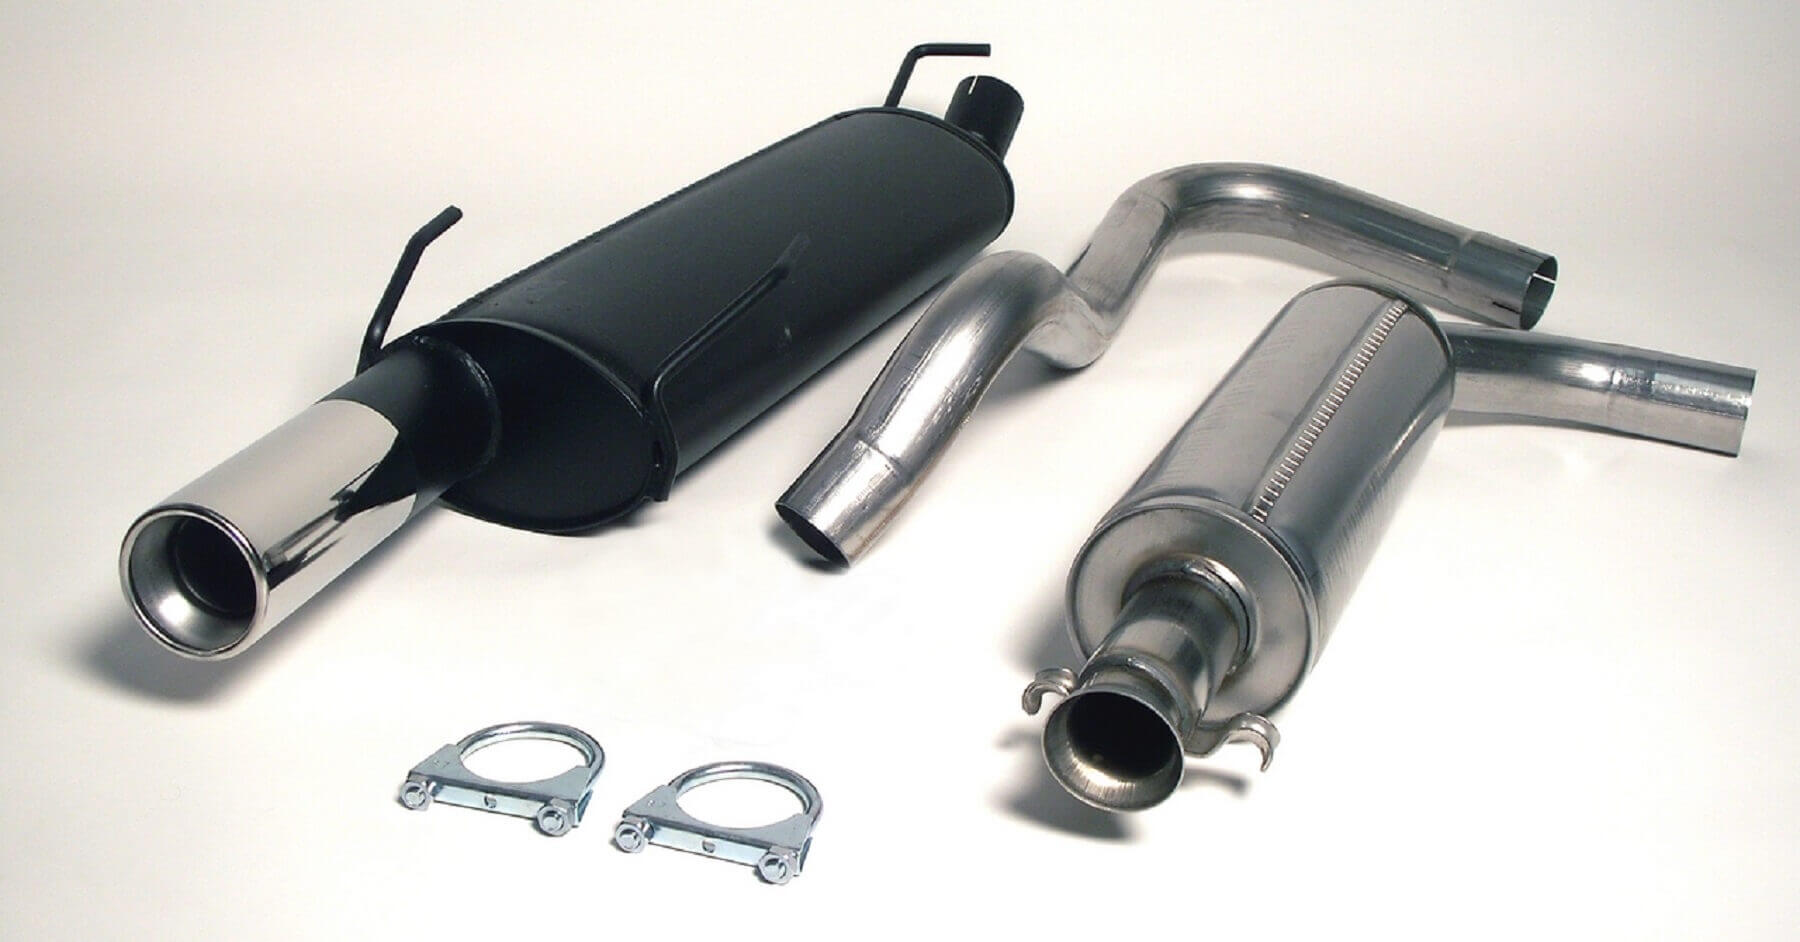 Saab 900 Coupe Cabrio Jetex Performance Stainless Steel Cat Back Exhaust System with Round 90mm Tail Pipe